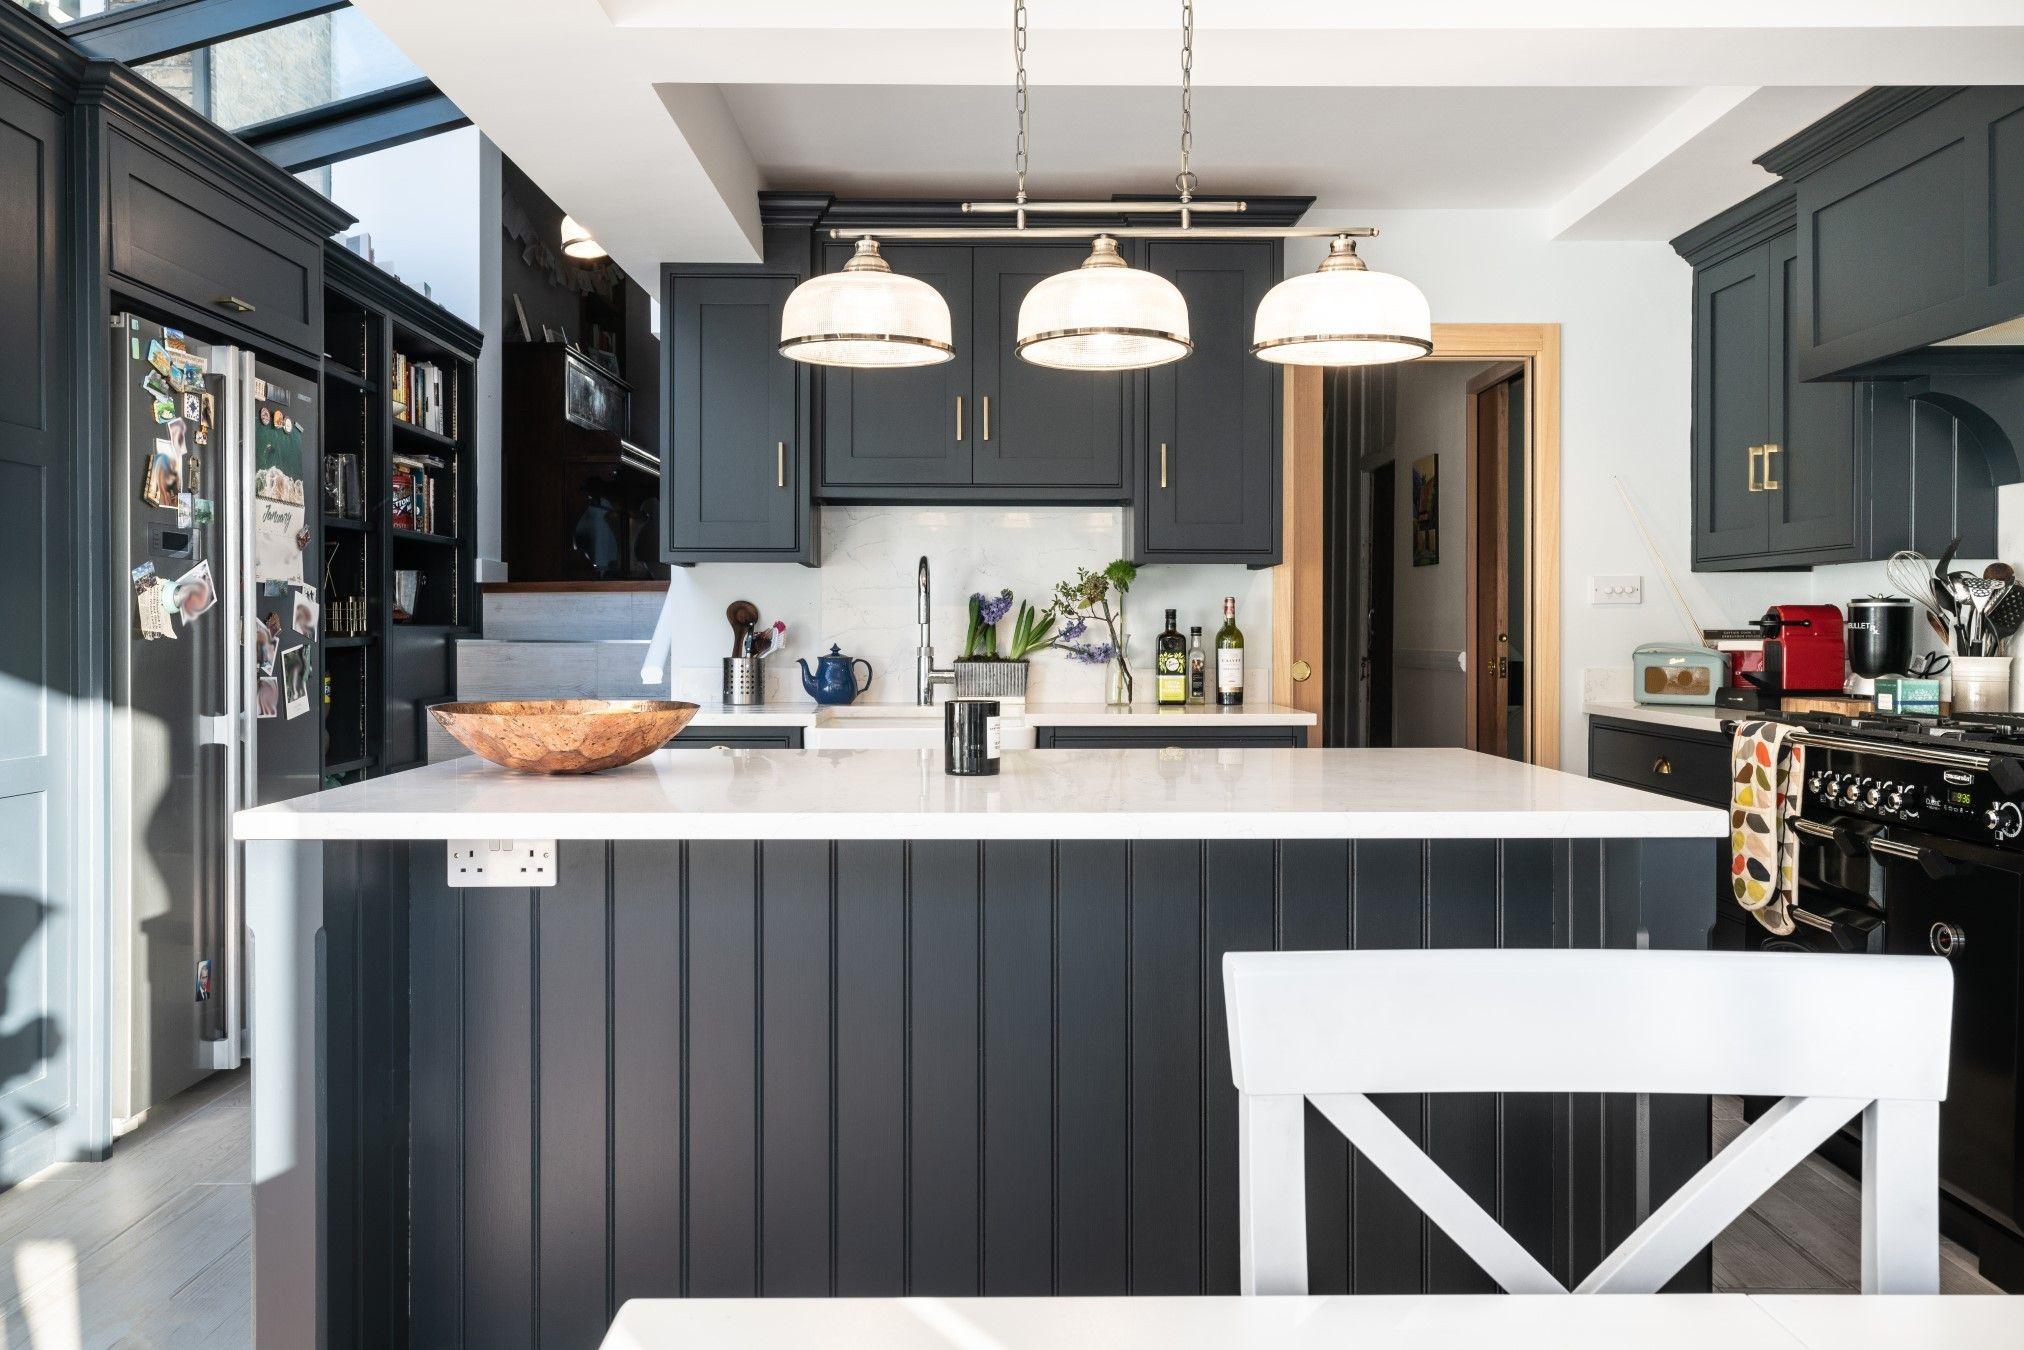 Pin by Rose Skehin on kitchen in 2020 | Kitchen island ...